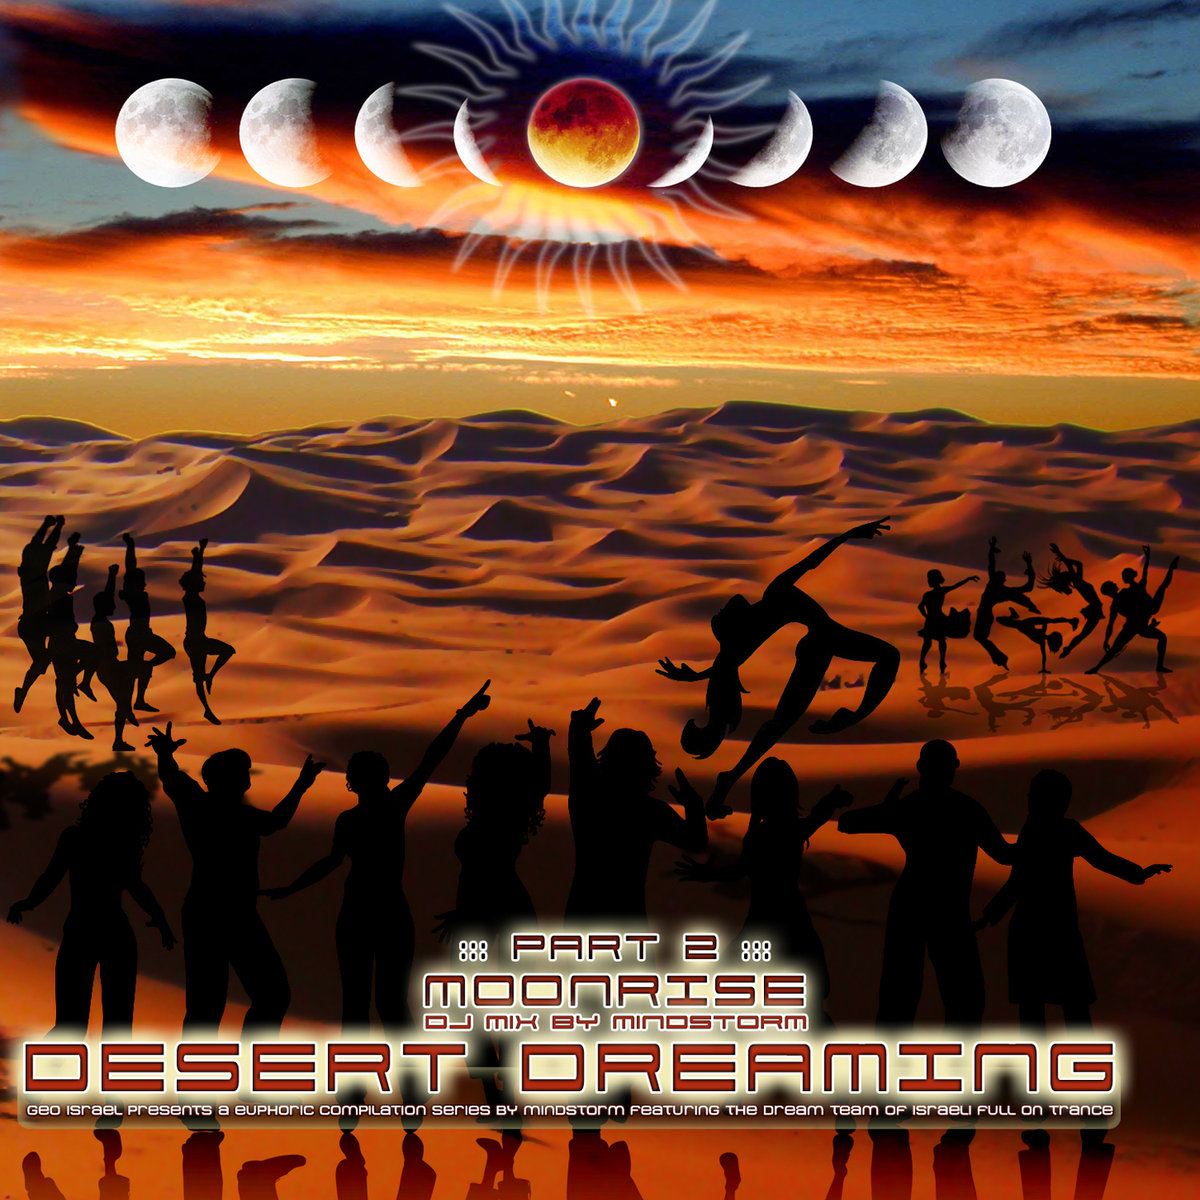 Solar System - Dark Star @ 'Various Artists - Desert Dreaming Part 2: Moonrise (DJ Mix by Mindstorm)' album (electronic, goa)